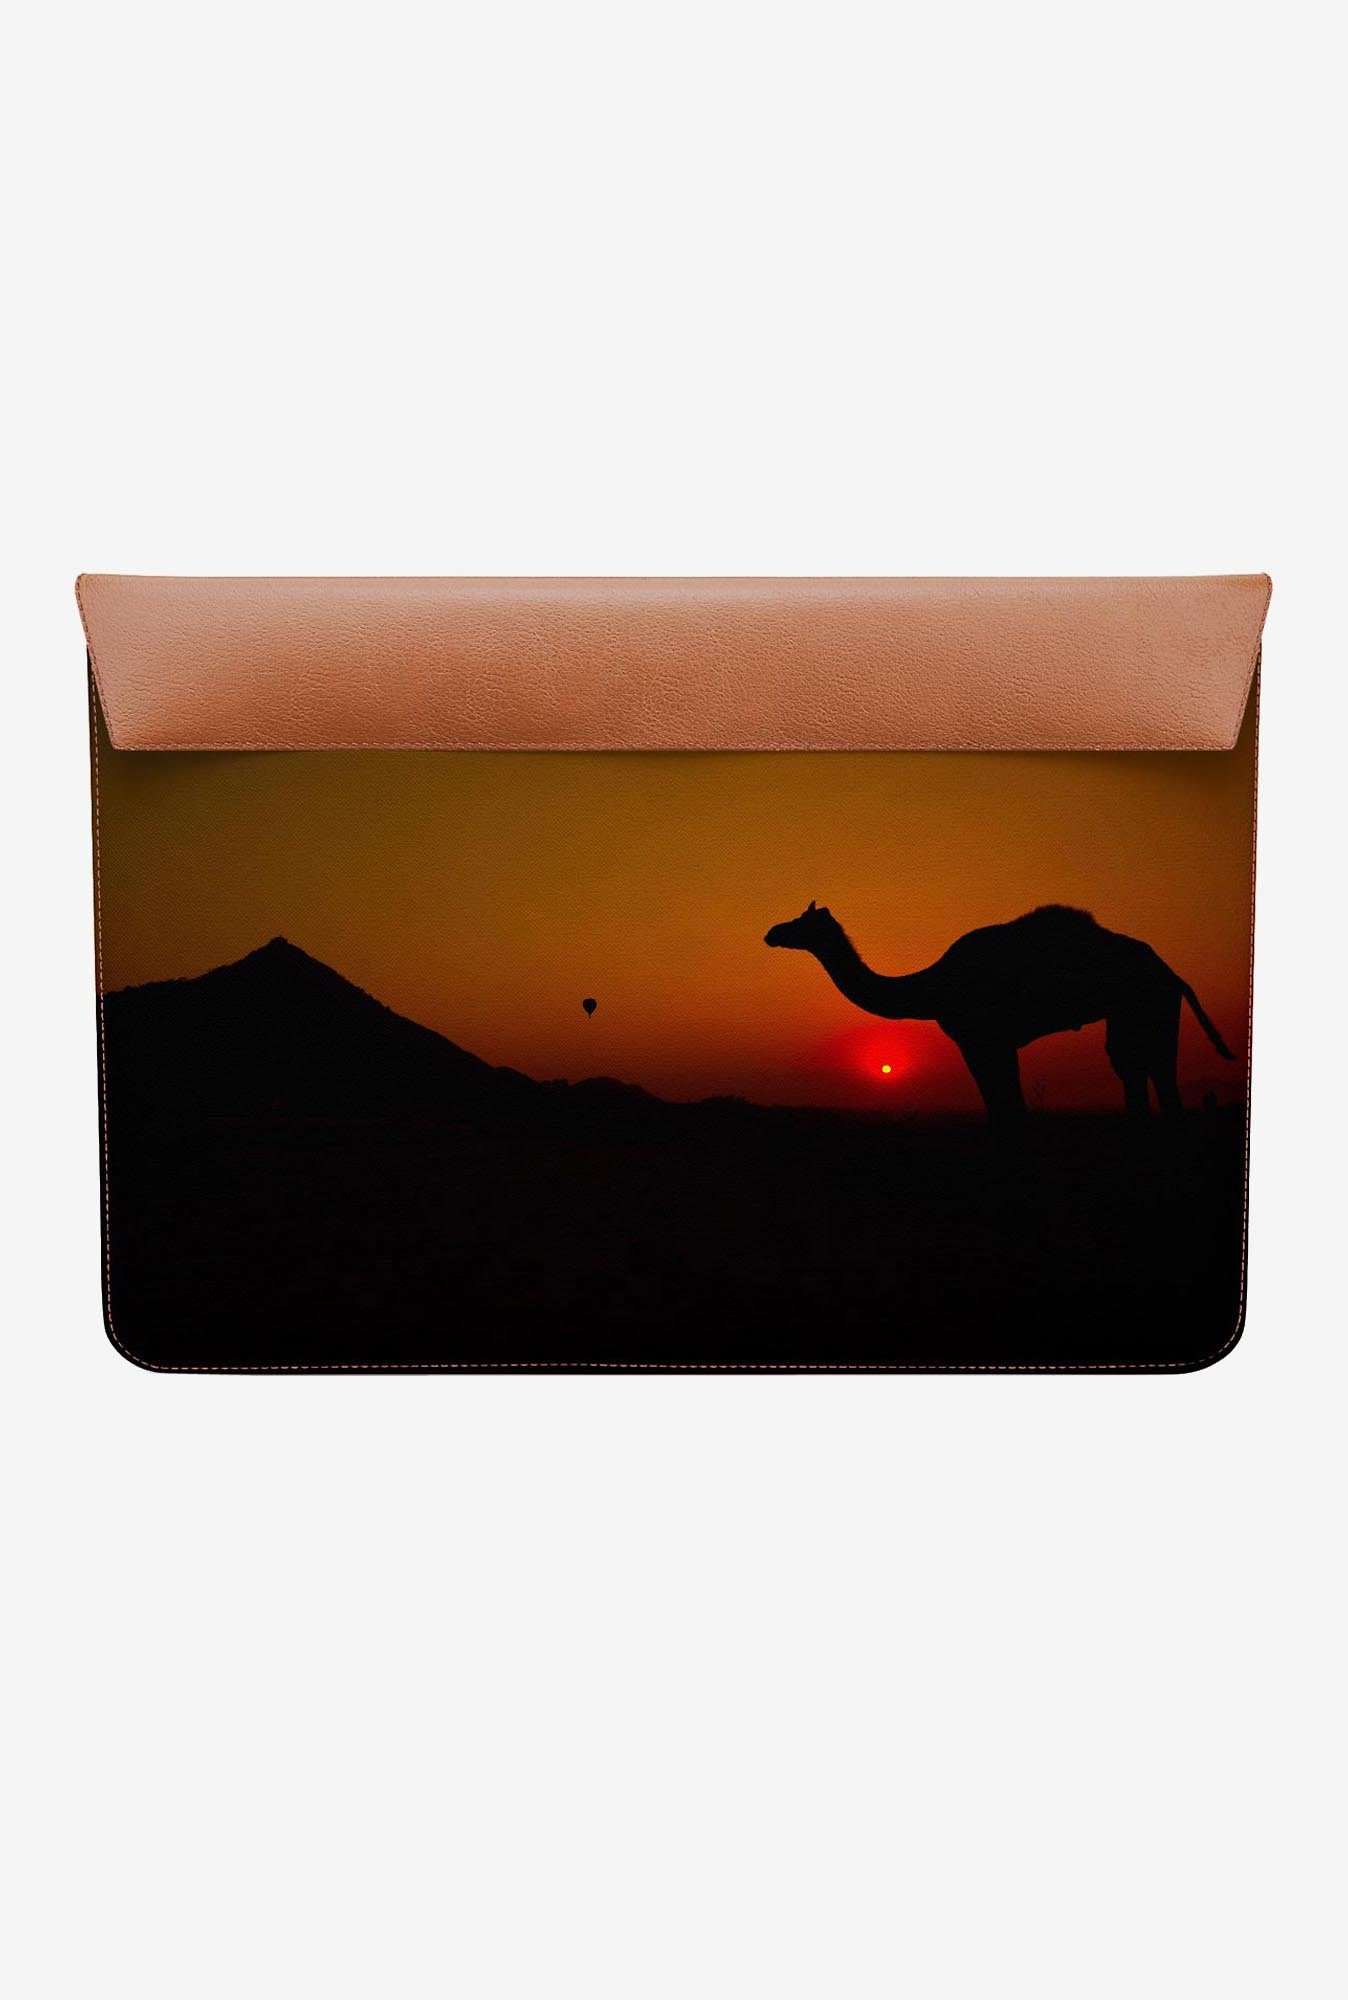 DailyObjects Pushkar Balloon MacBook Air 11 Envelope Sleeve